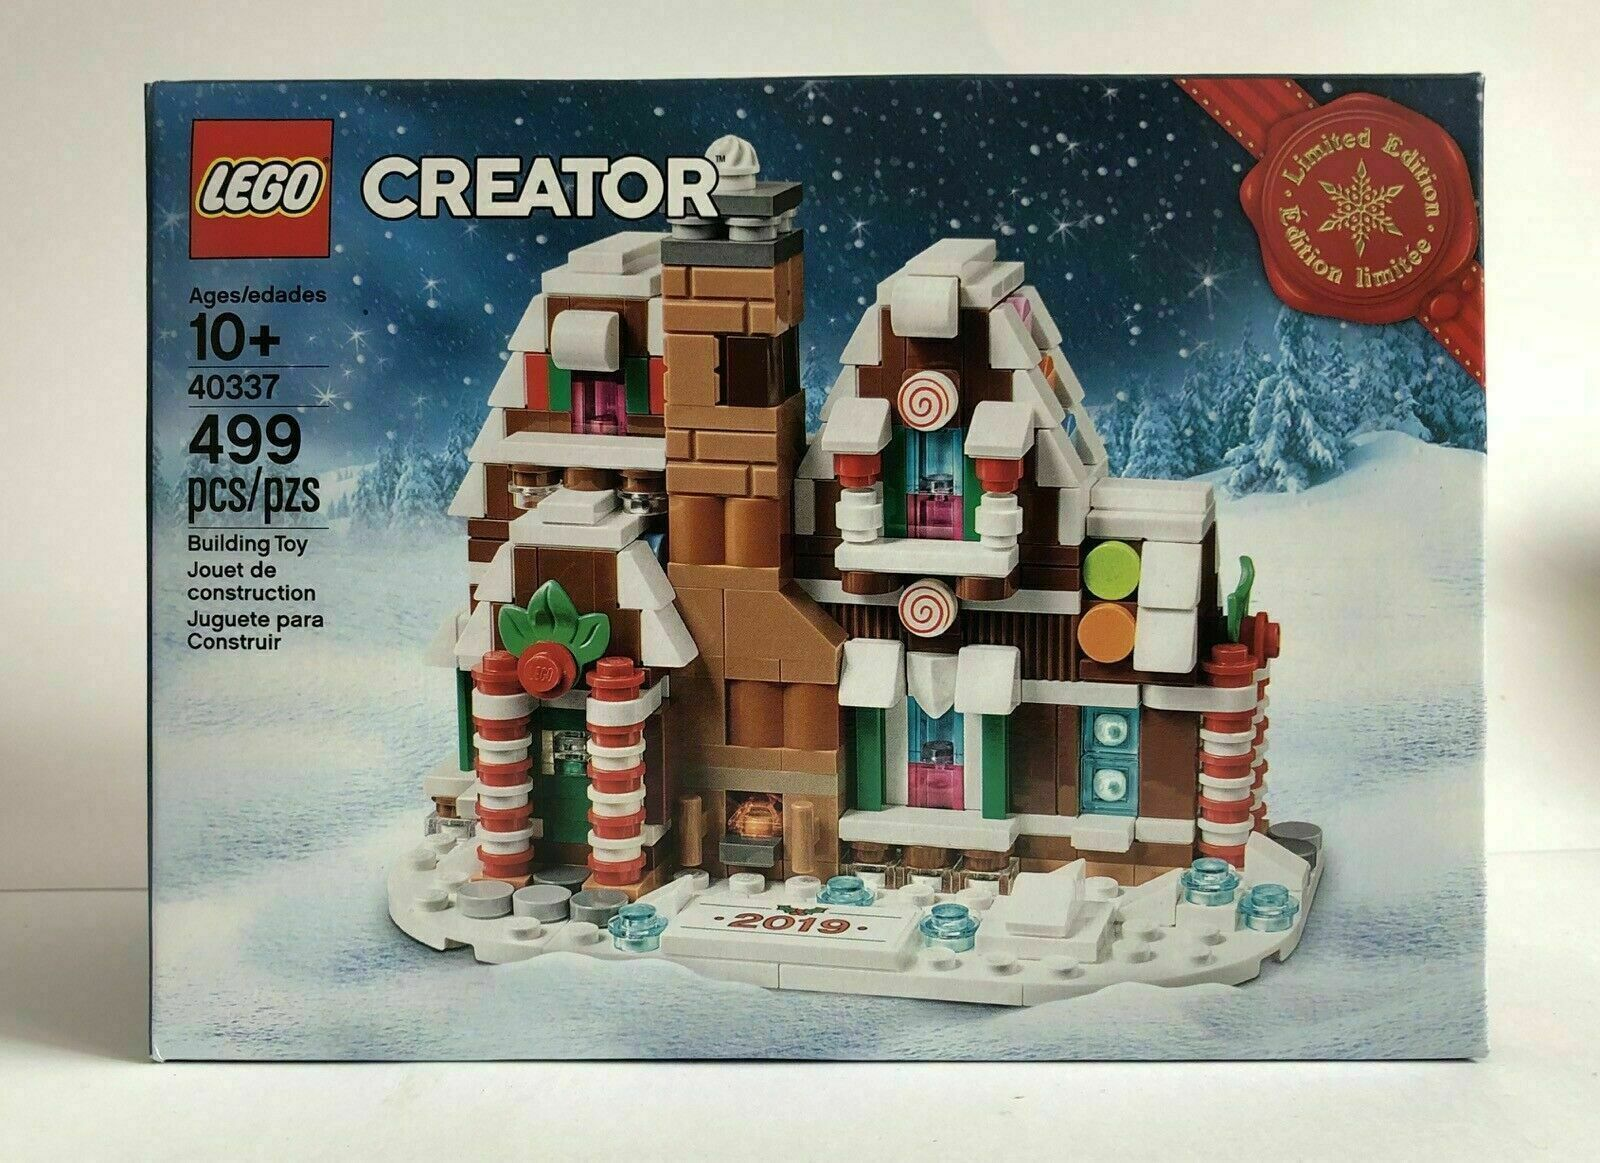 Details about LEGO Creator Mini Gingerbread House 40337